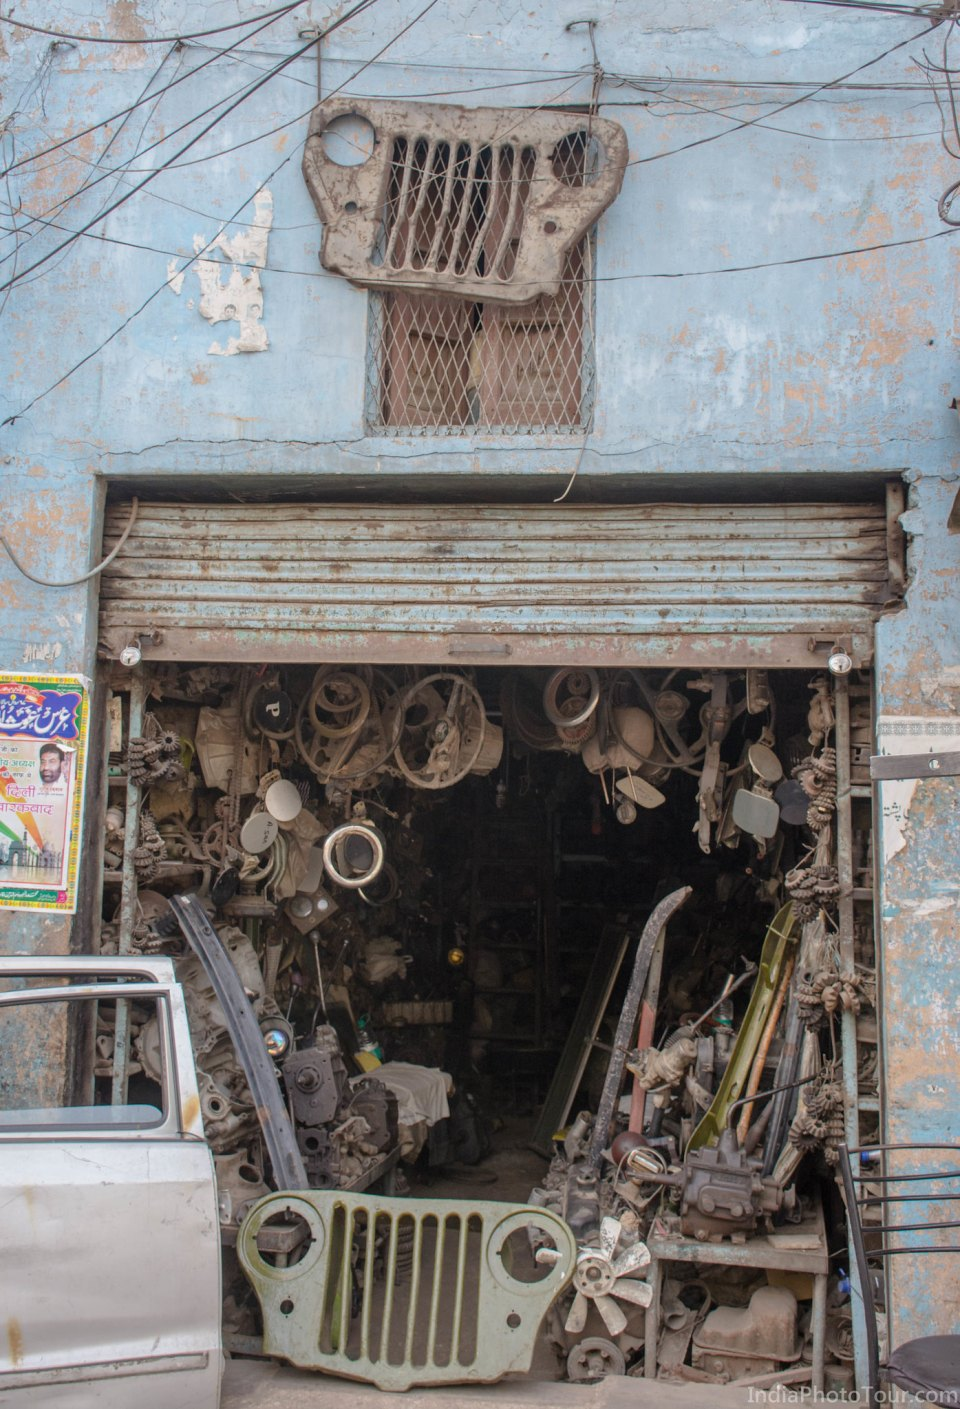 Old spare parts for sale in vehicles parts market